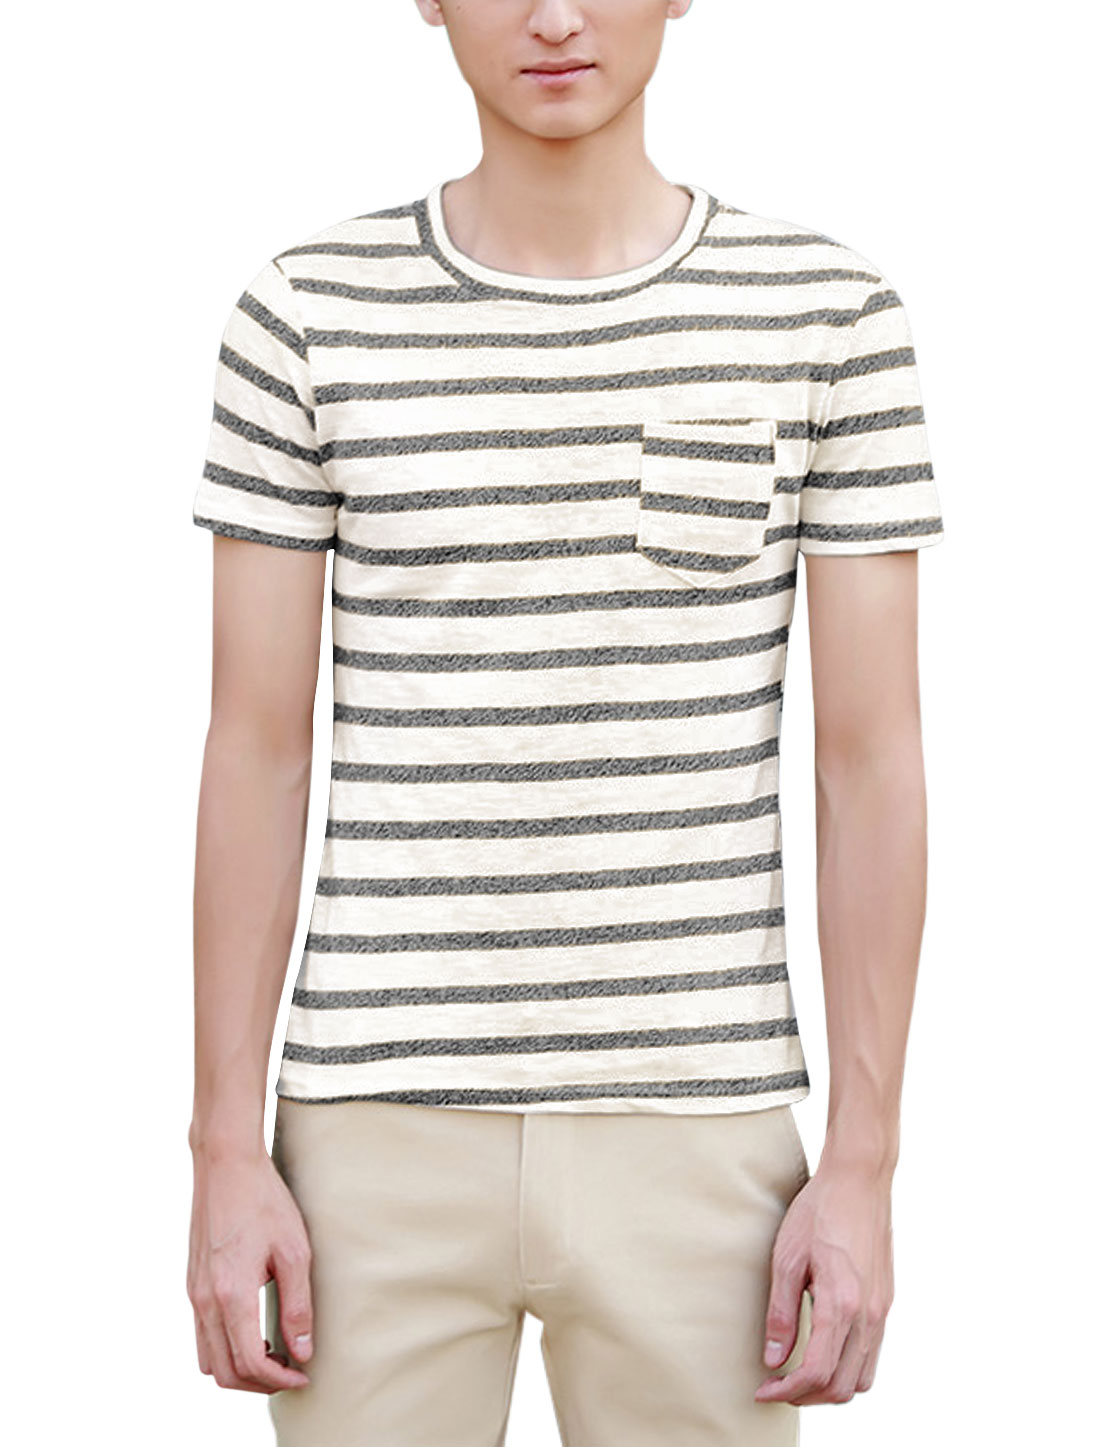 Men Stripes One Chest Pocket Short Sleeves Casual T-Shirts Black White S